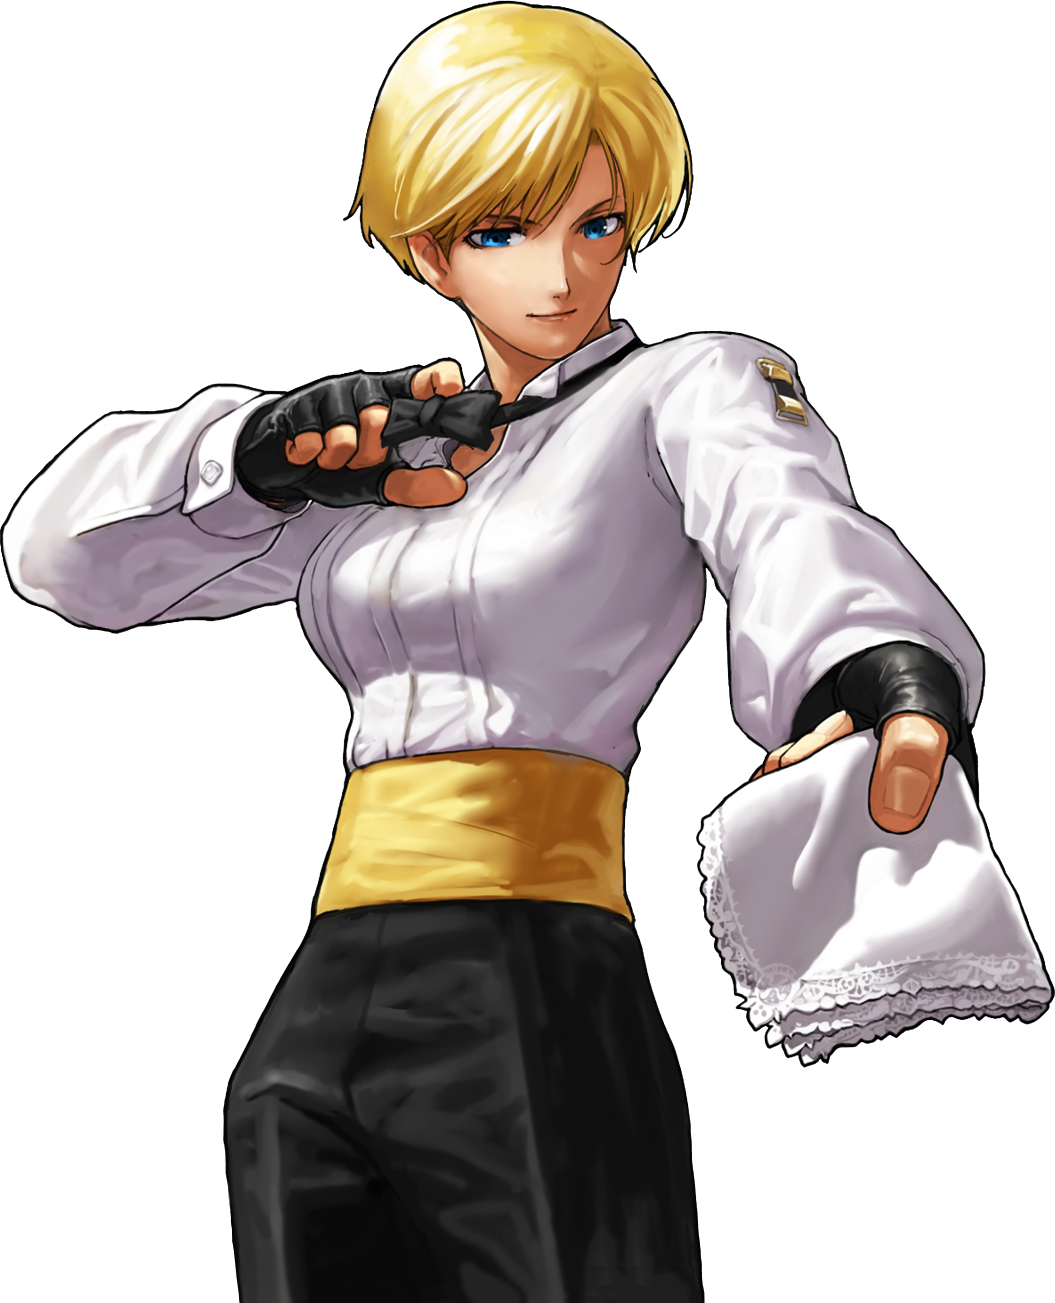 The king of fighters neowave women fighters team king anime manga illustrations - King of fighters characters pictures ...